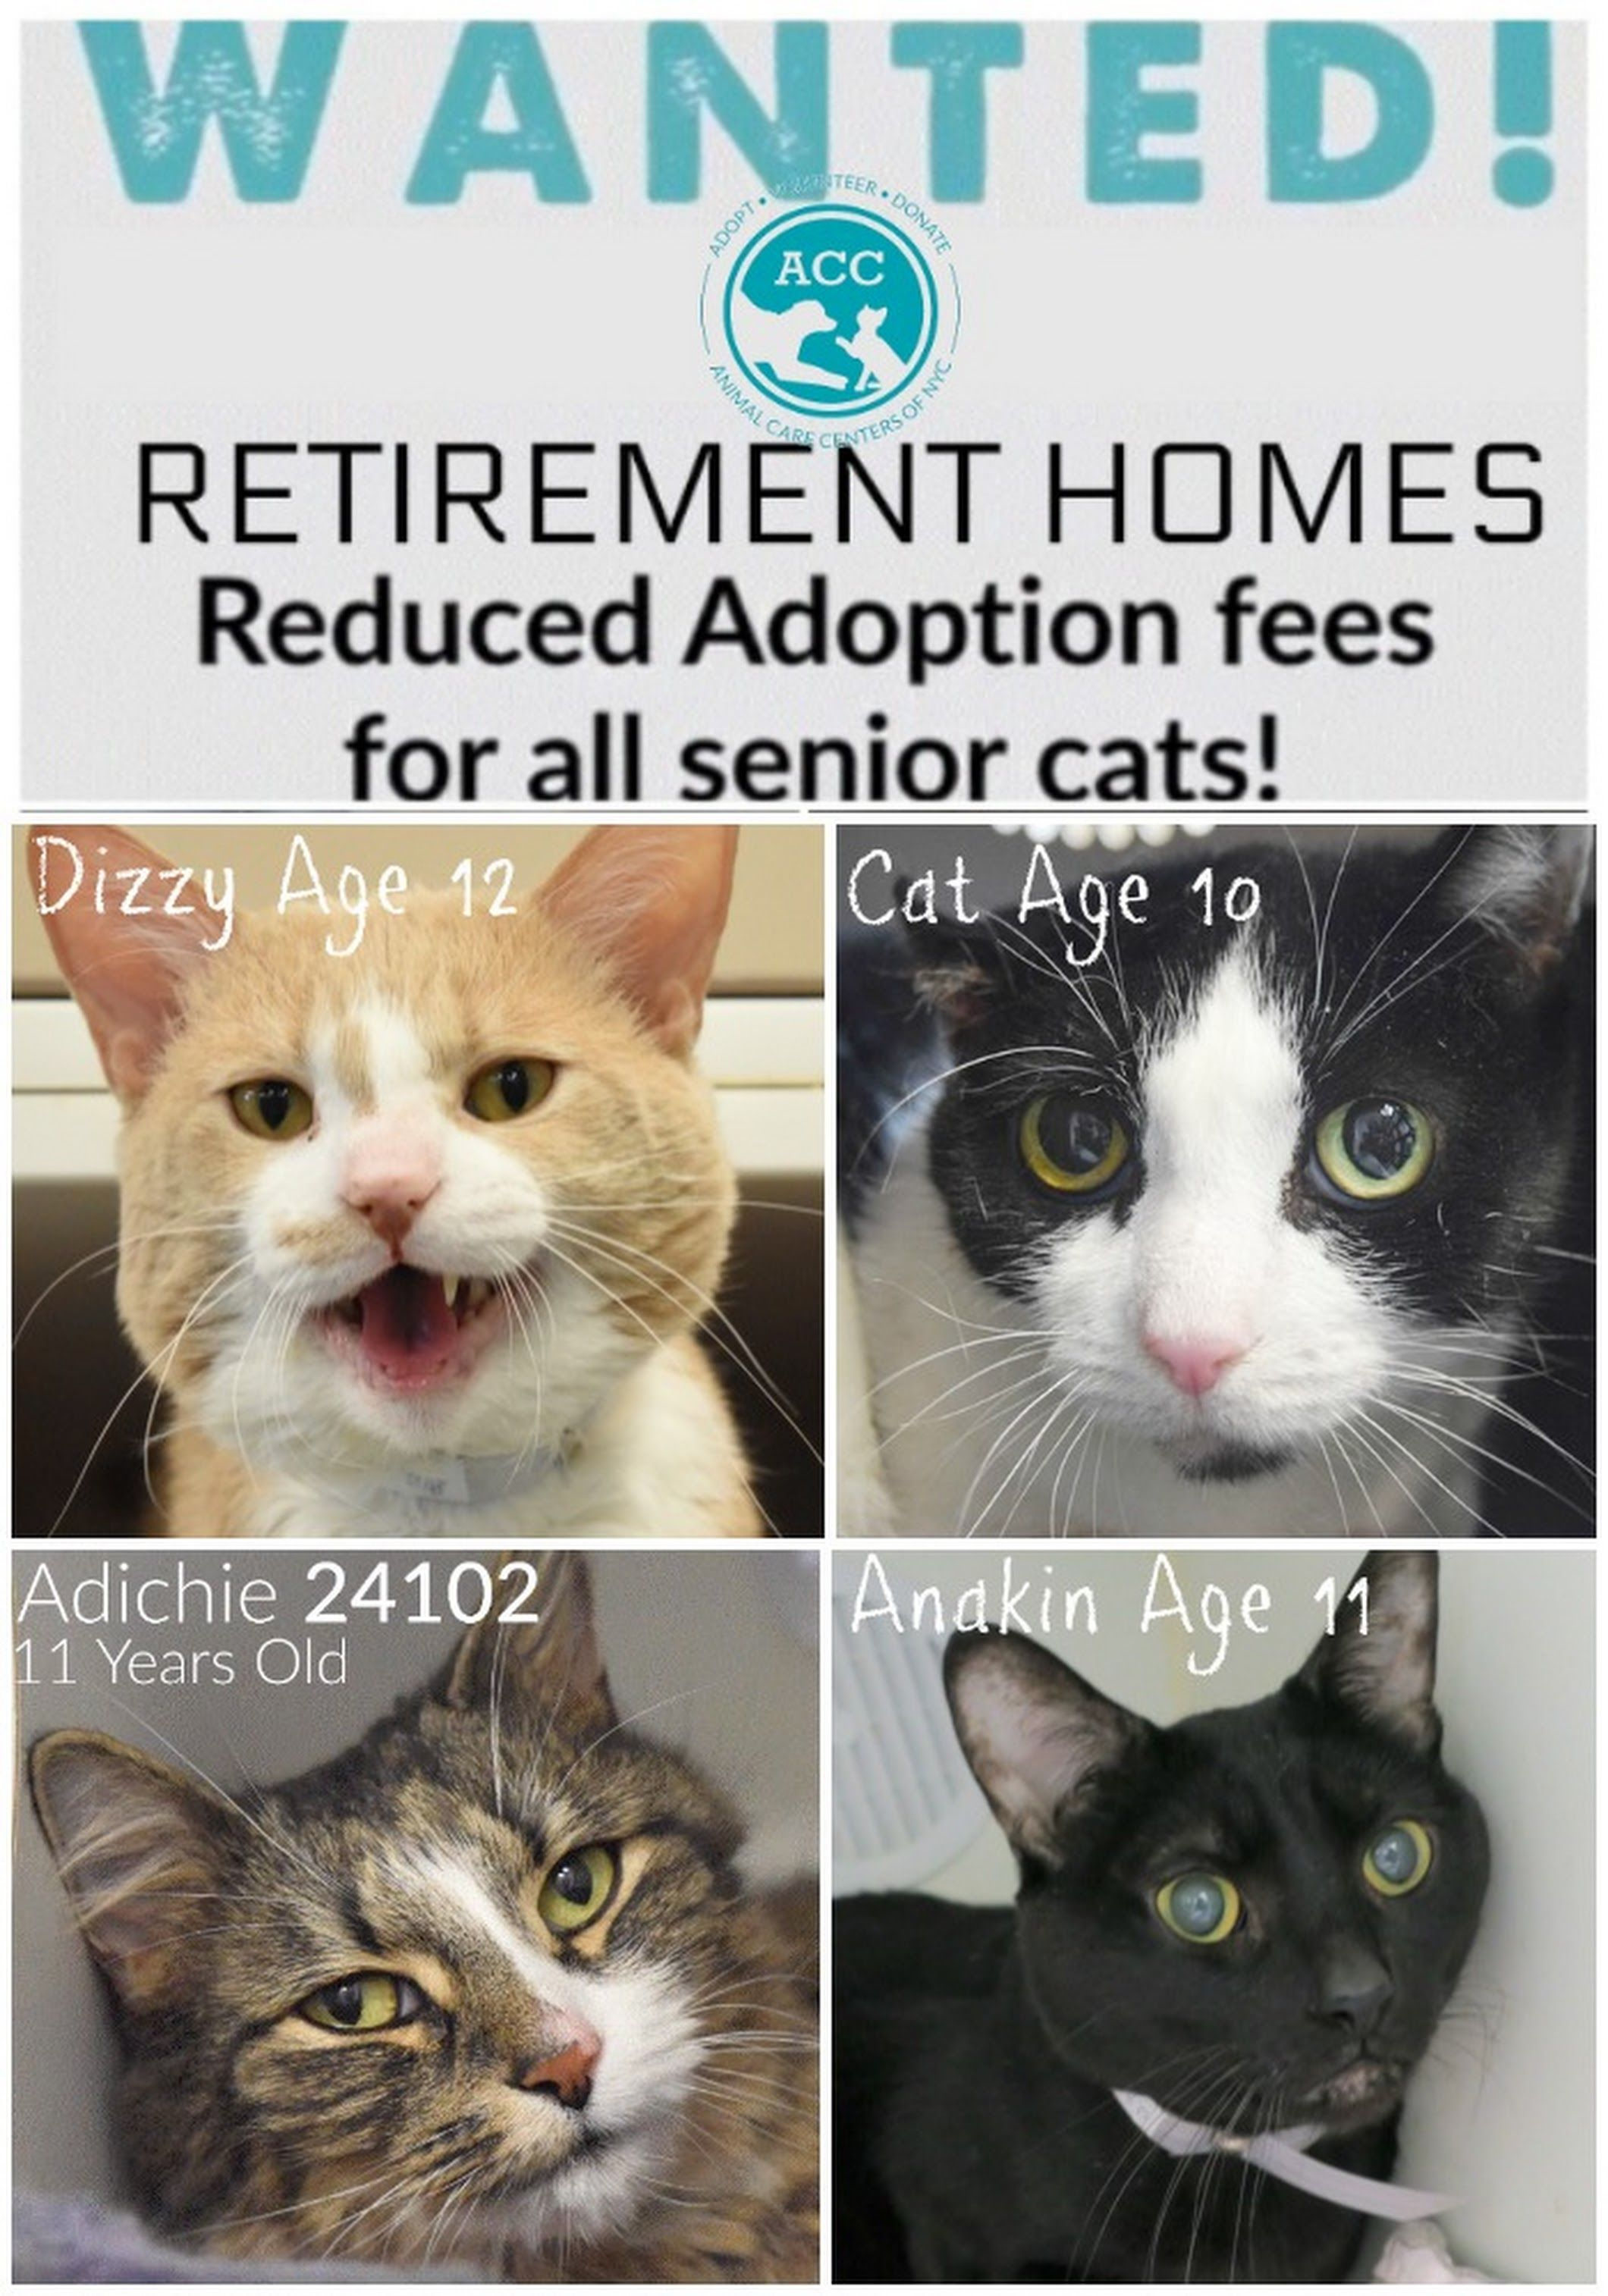 Animal Care Centers Of Nyc Acc Retirement Homes Wanted At Manhattan Acc We Have A Lot Of Senior Kitties Available For Adoption Kitten Rescue Rescue Dogs Cats Kittens